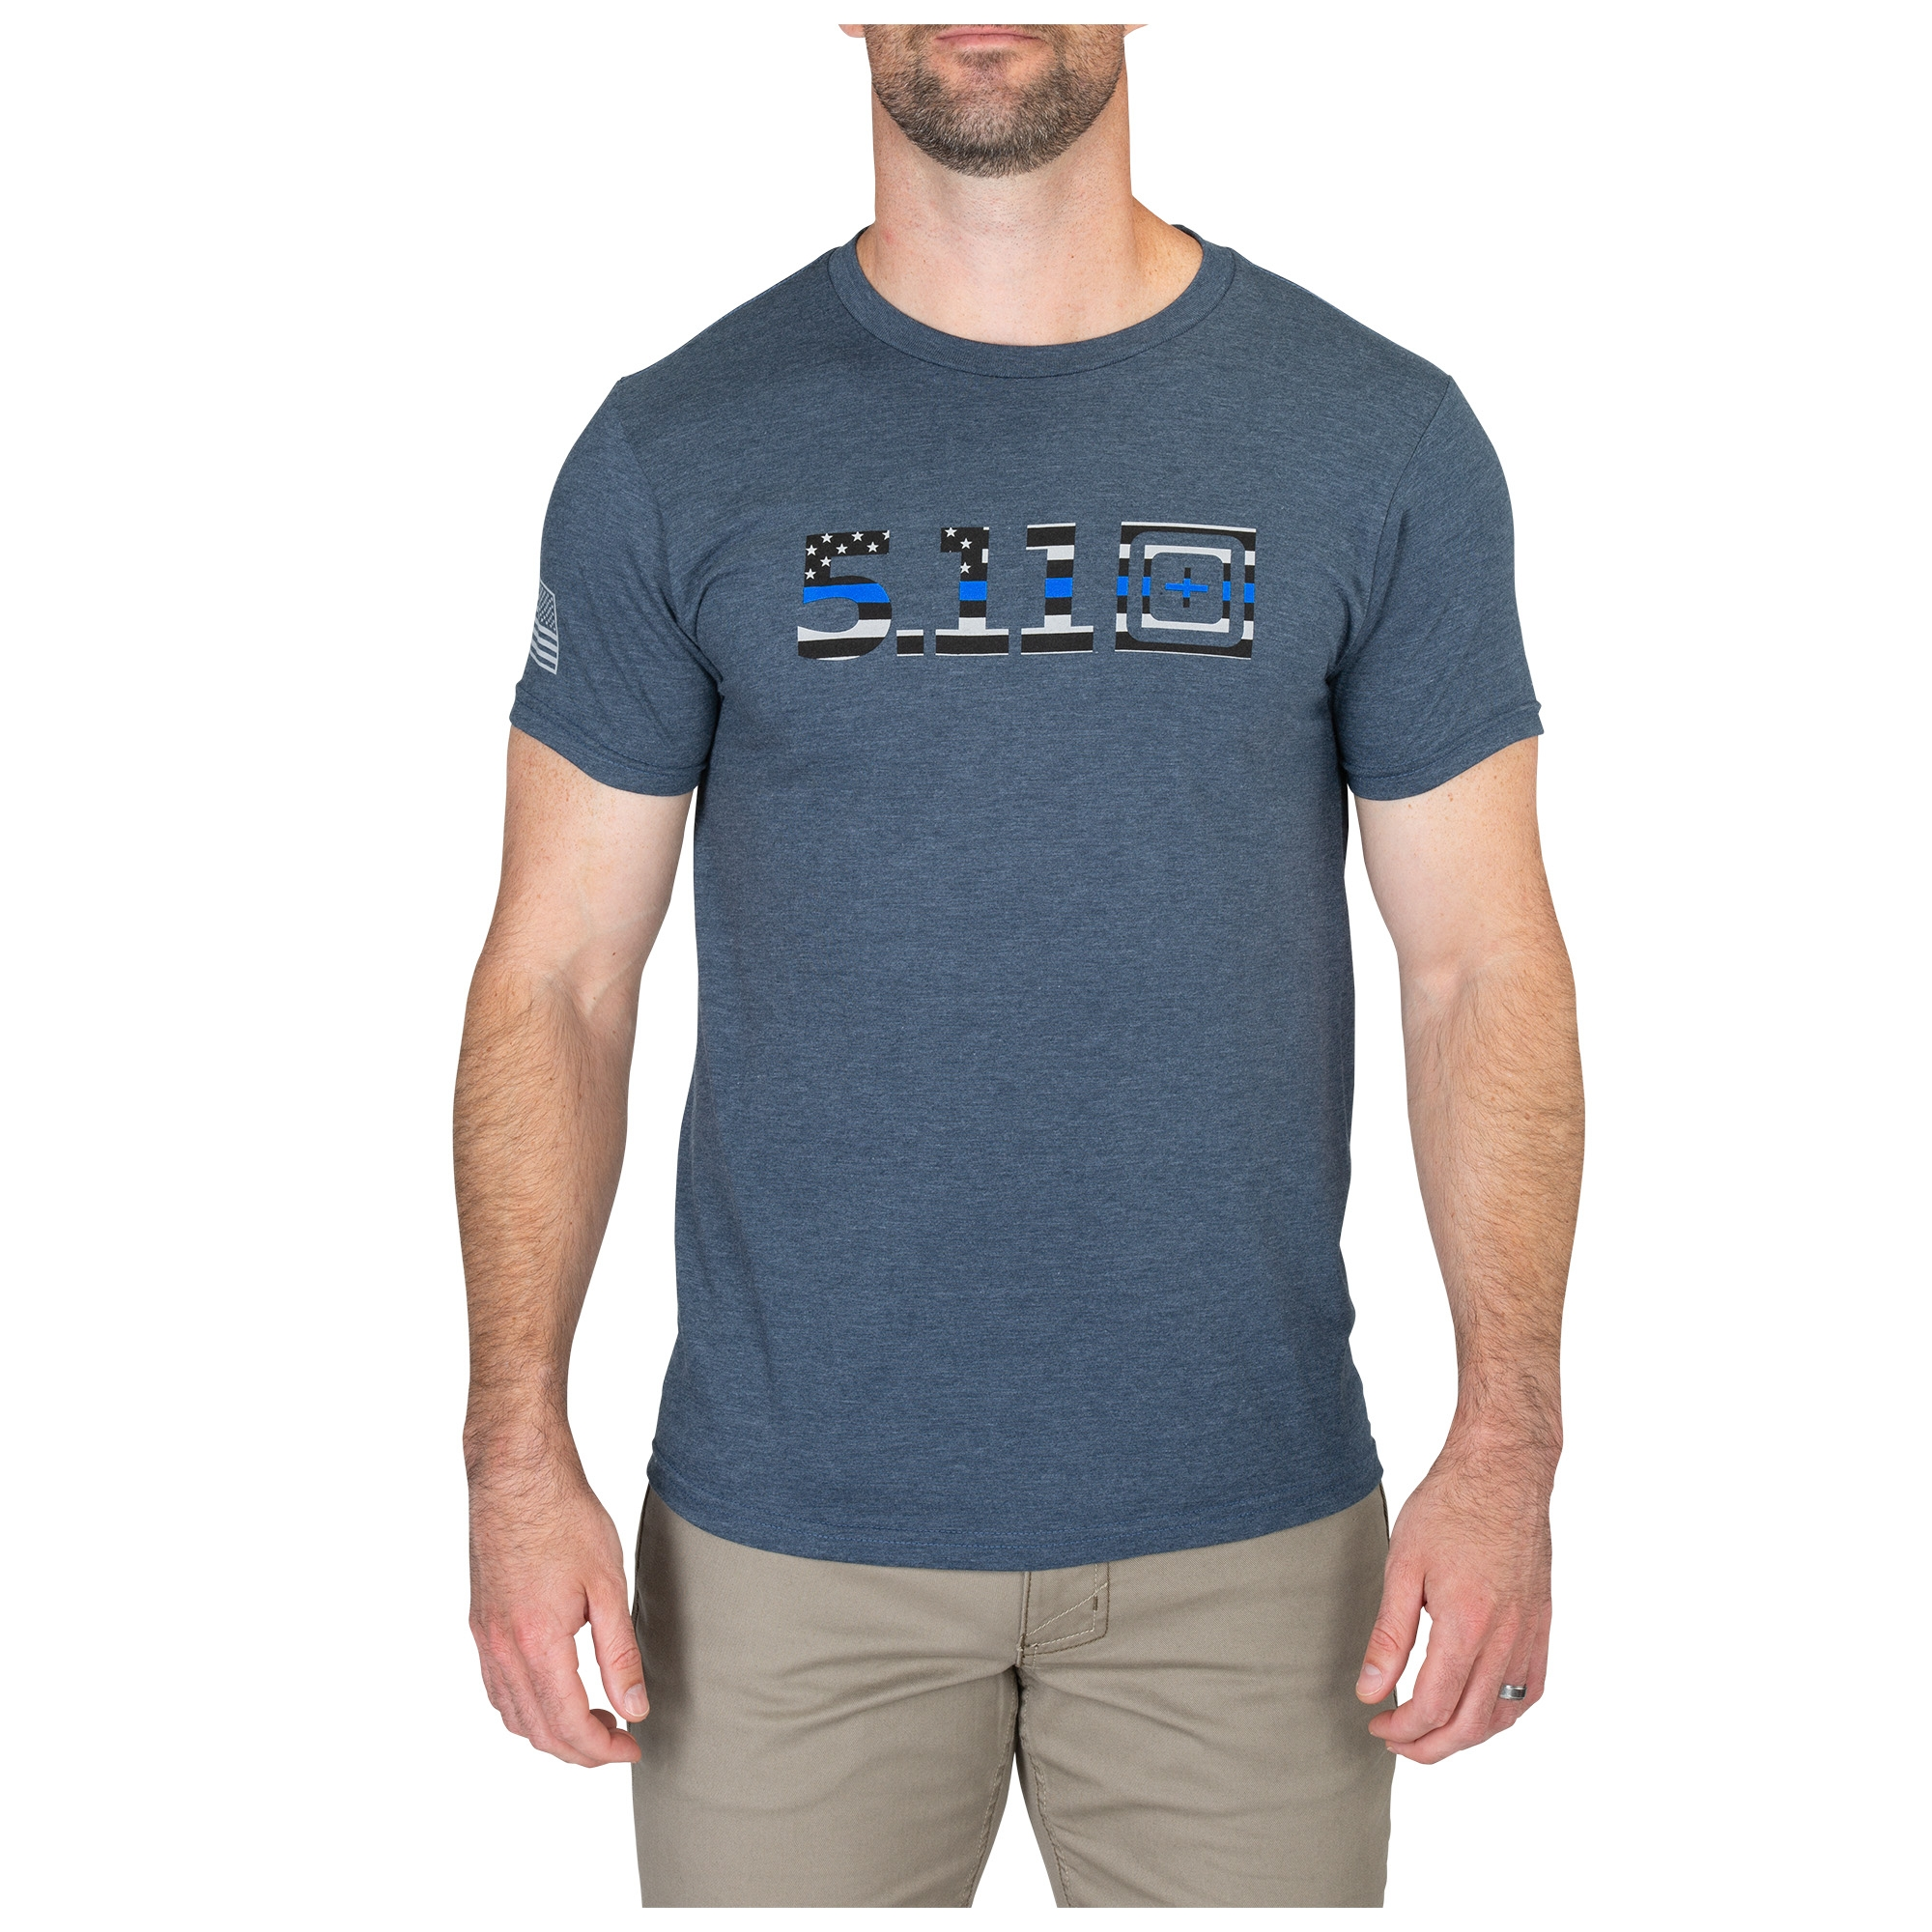 24bb35f82 Legacy Blue Flag Fill Tee - 2 for $30 - 5.11 Tactical